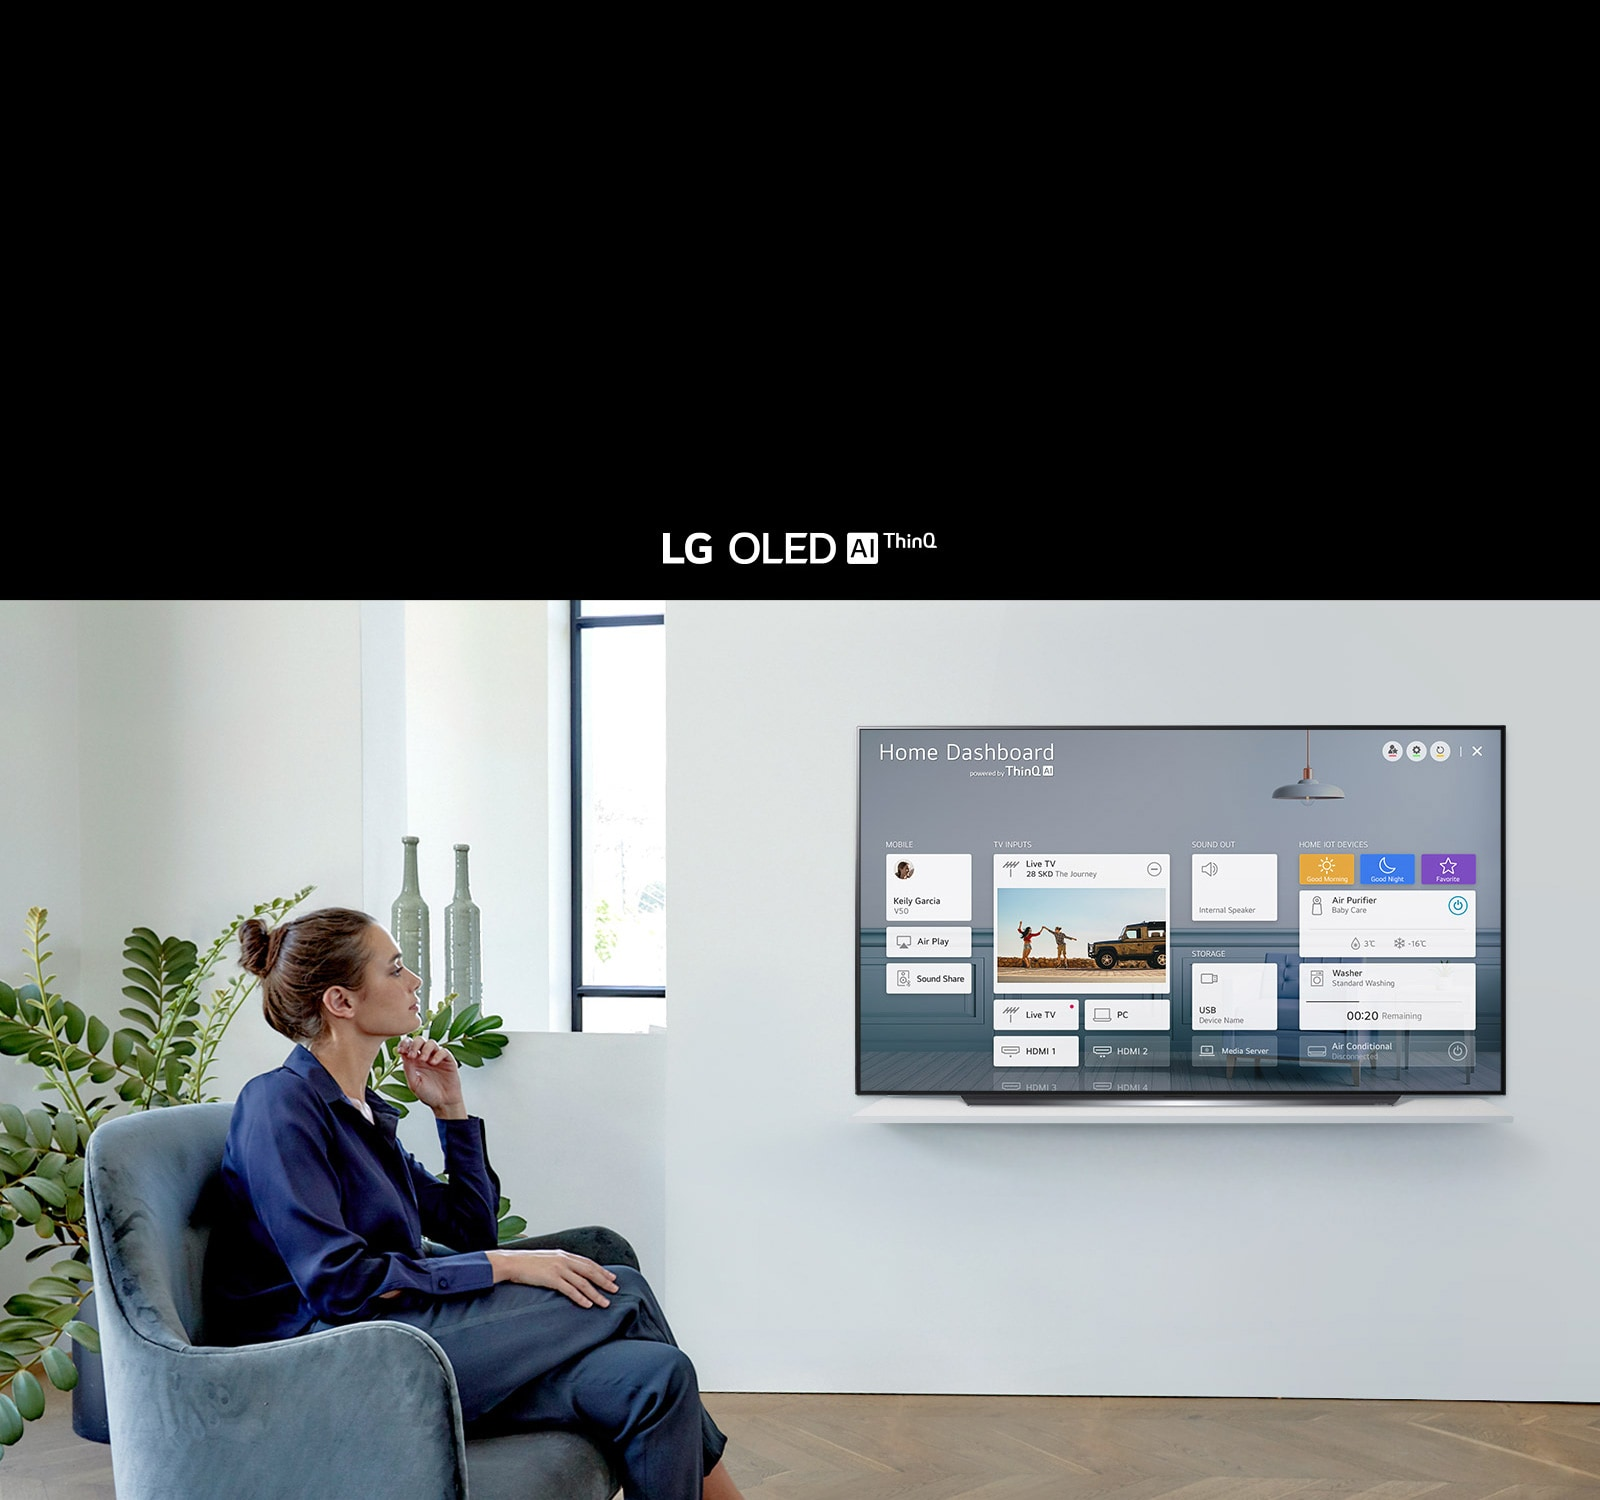 Woman sitting on a chair in the living room with the Home Dashboard on the TV screen